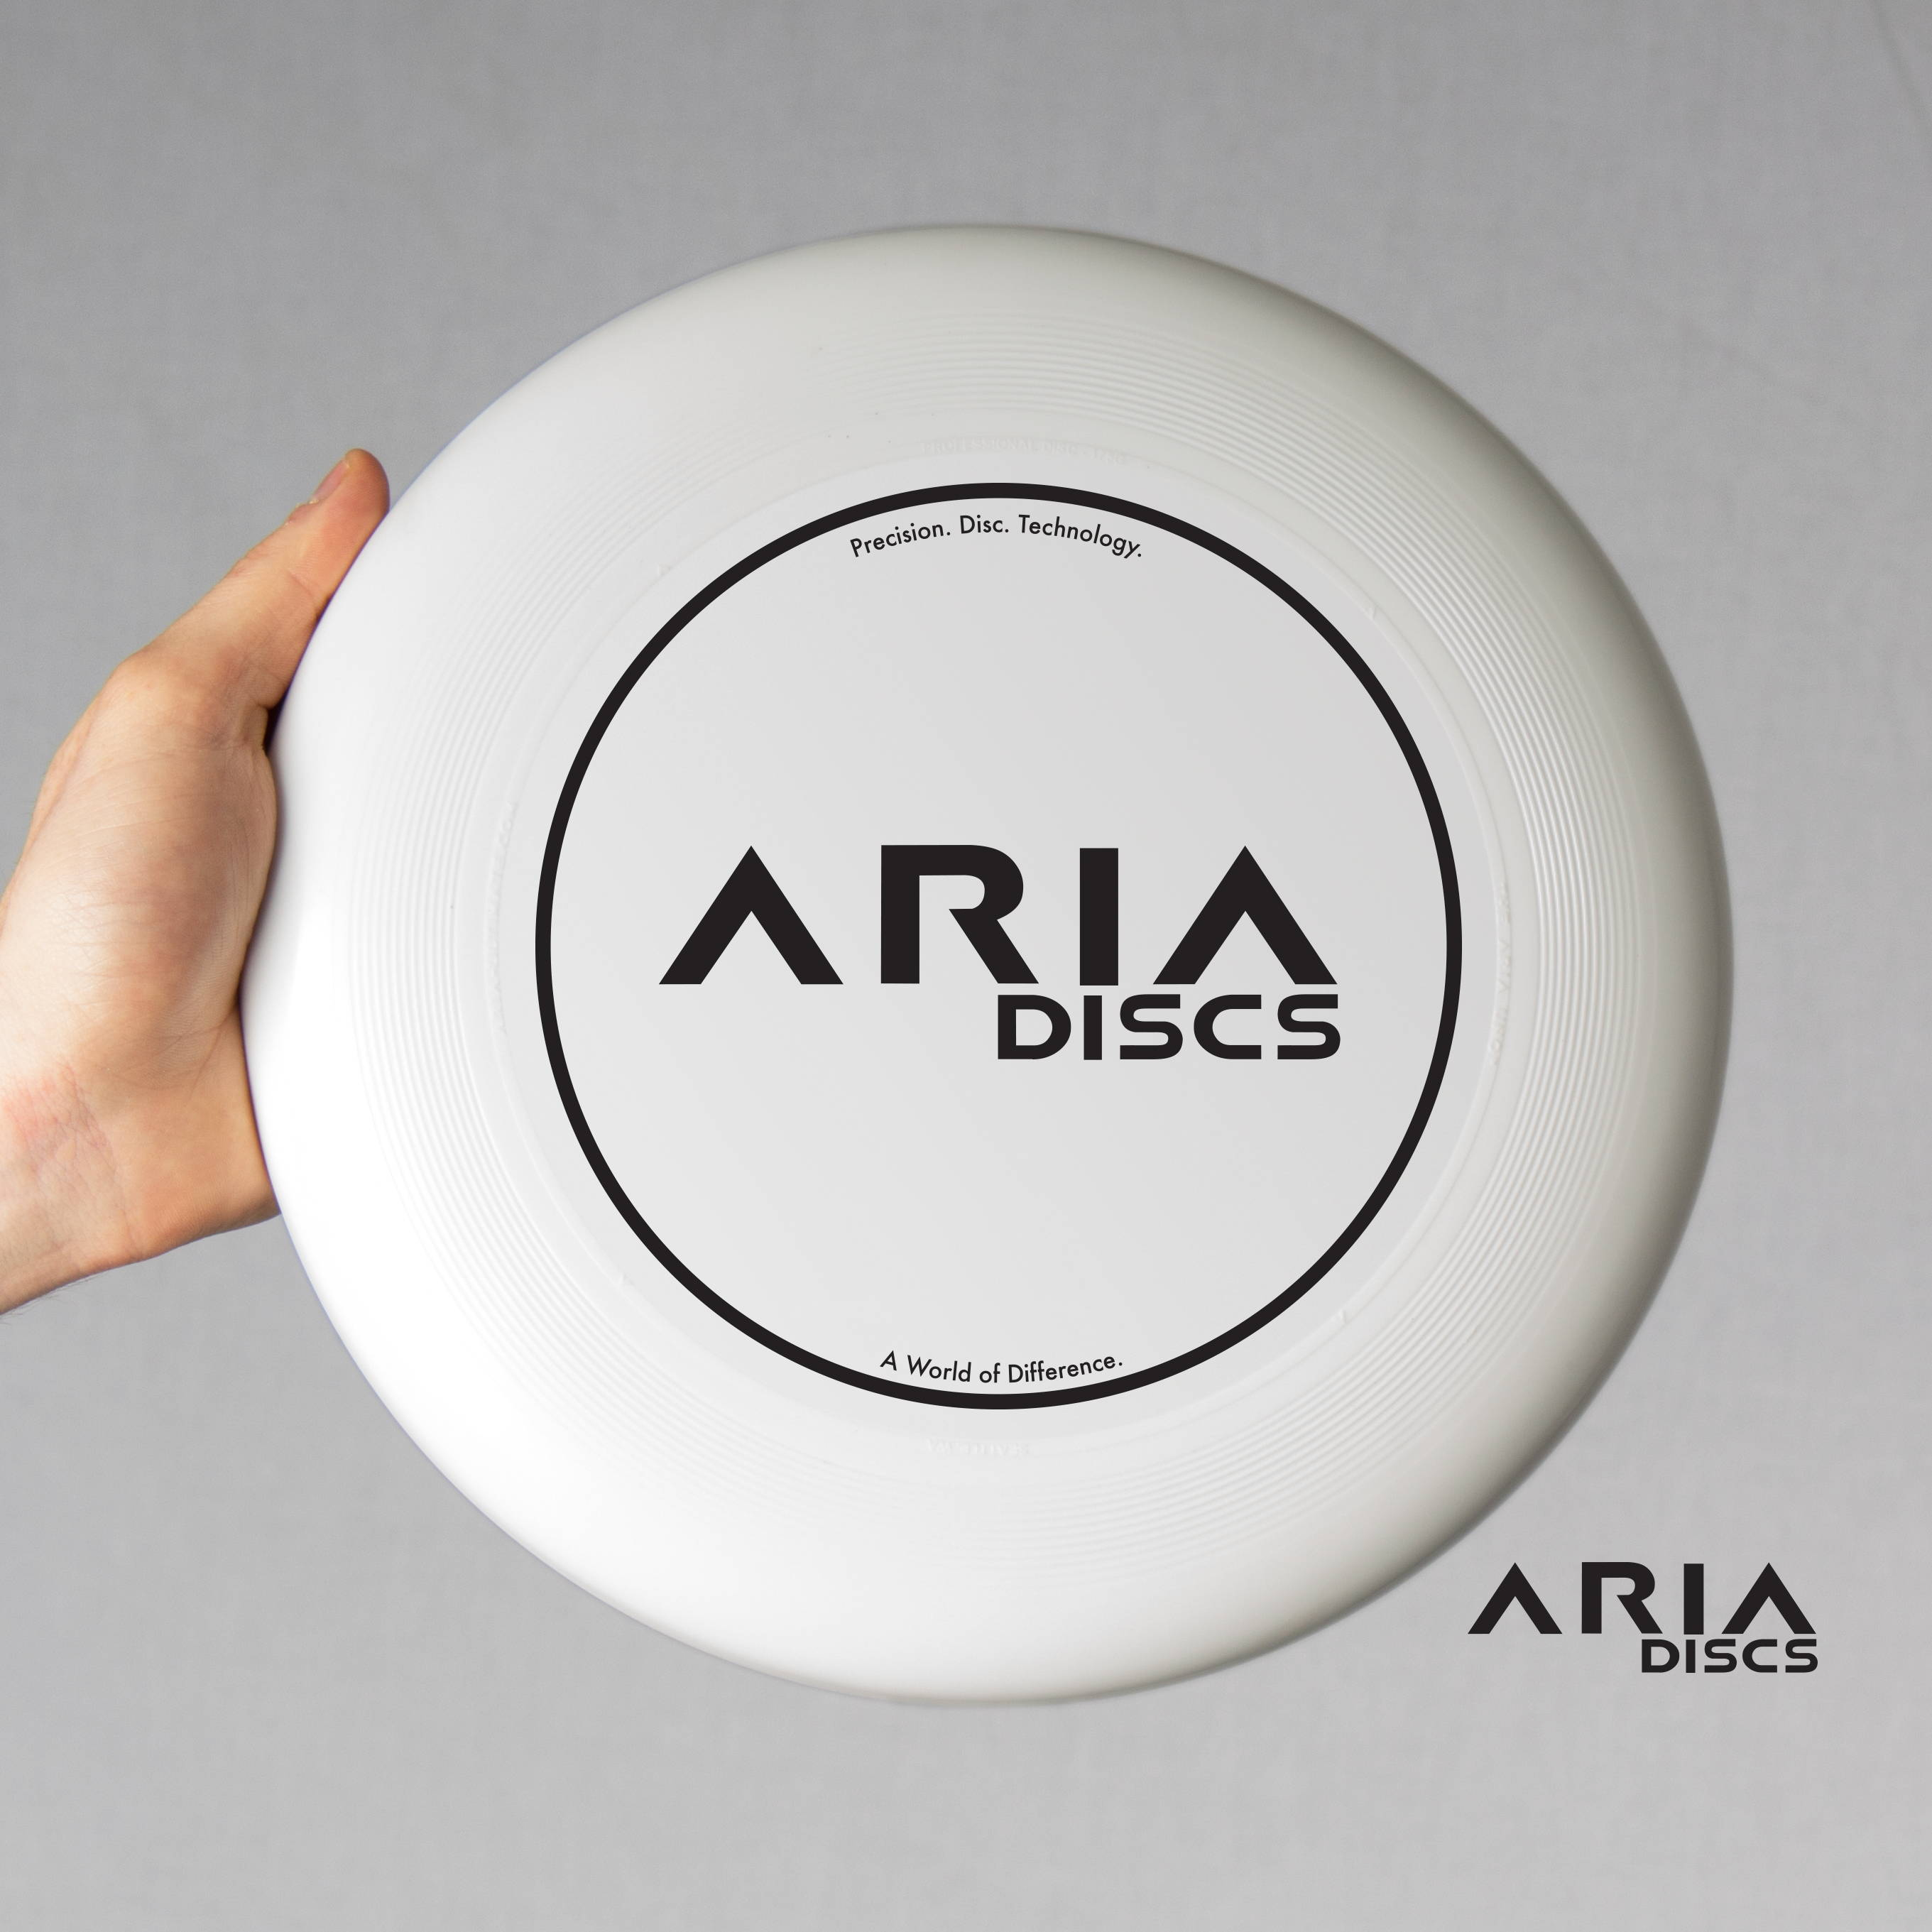 ARIA professional official ultimate flying disc for the sport commonly known as 'ultimate frisbee' original aria logo disc design